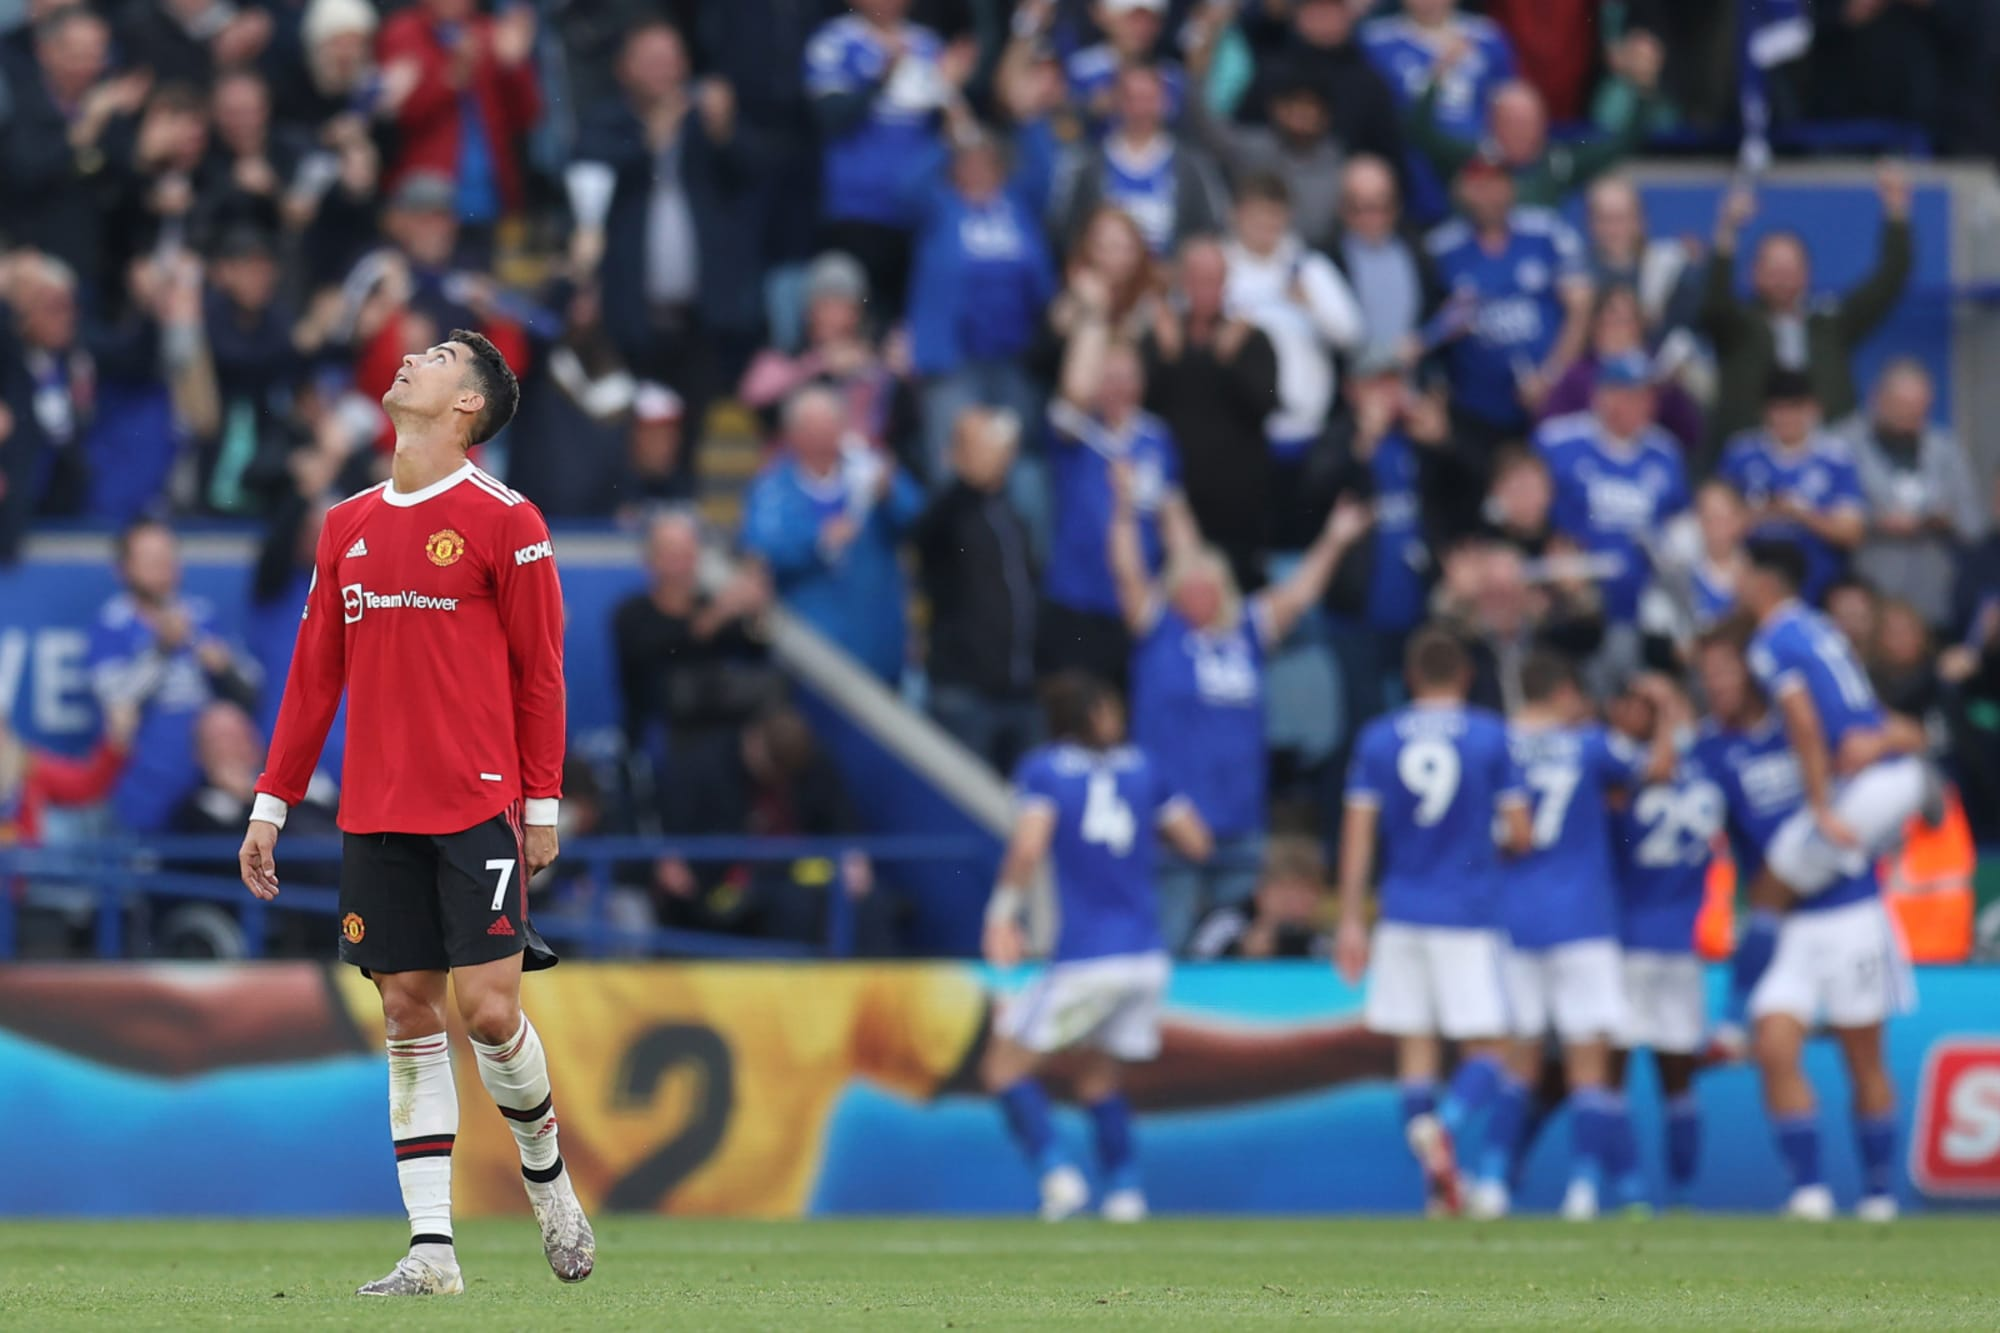 Leicester 4-2 Man United: 3 vital aspects we noticed